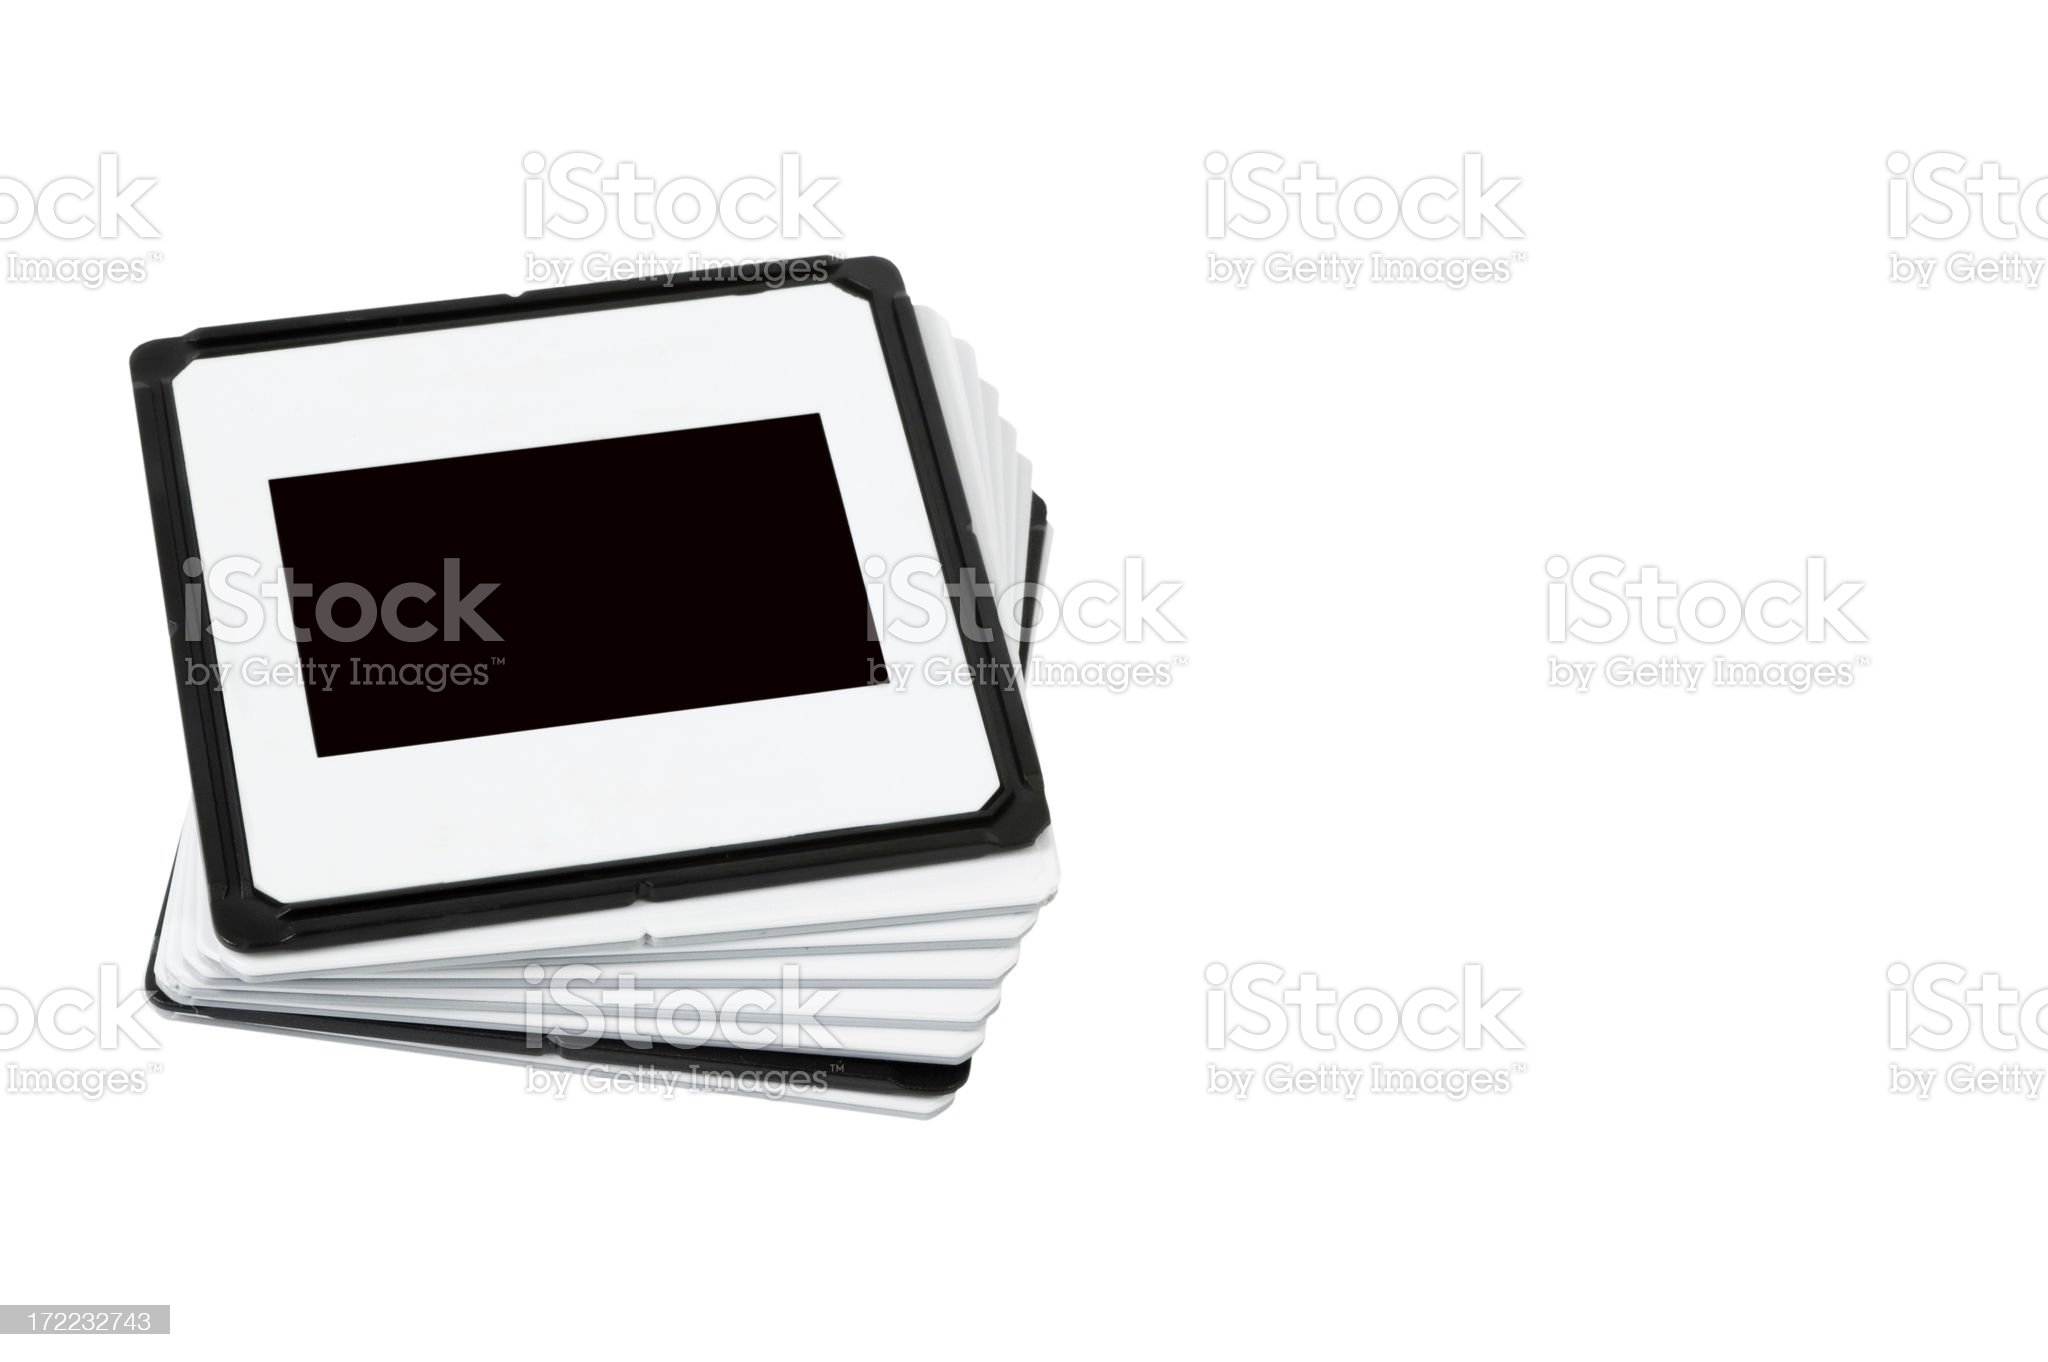 Stack of slides royalty-free stock photo